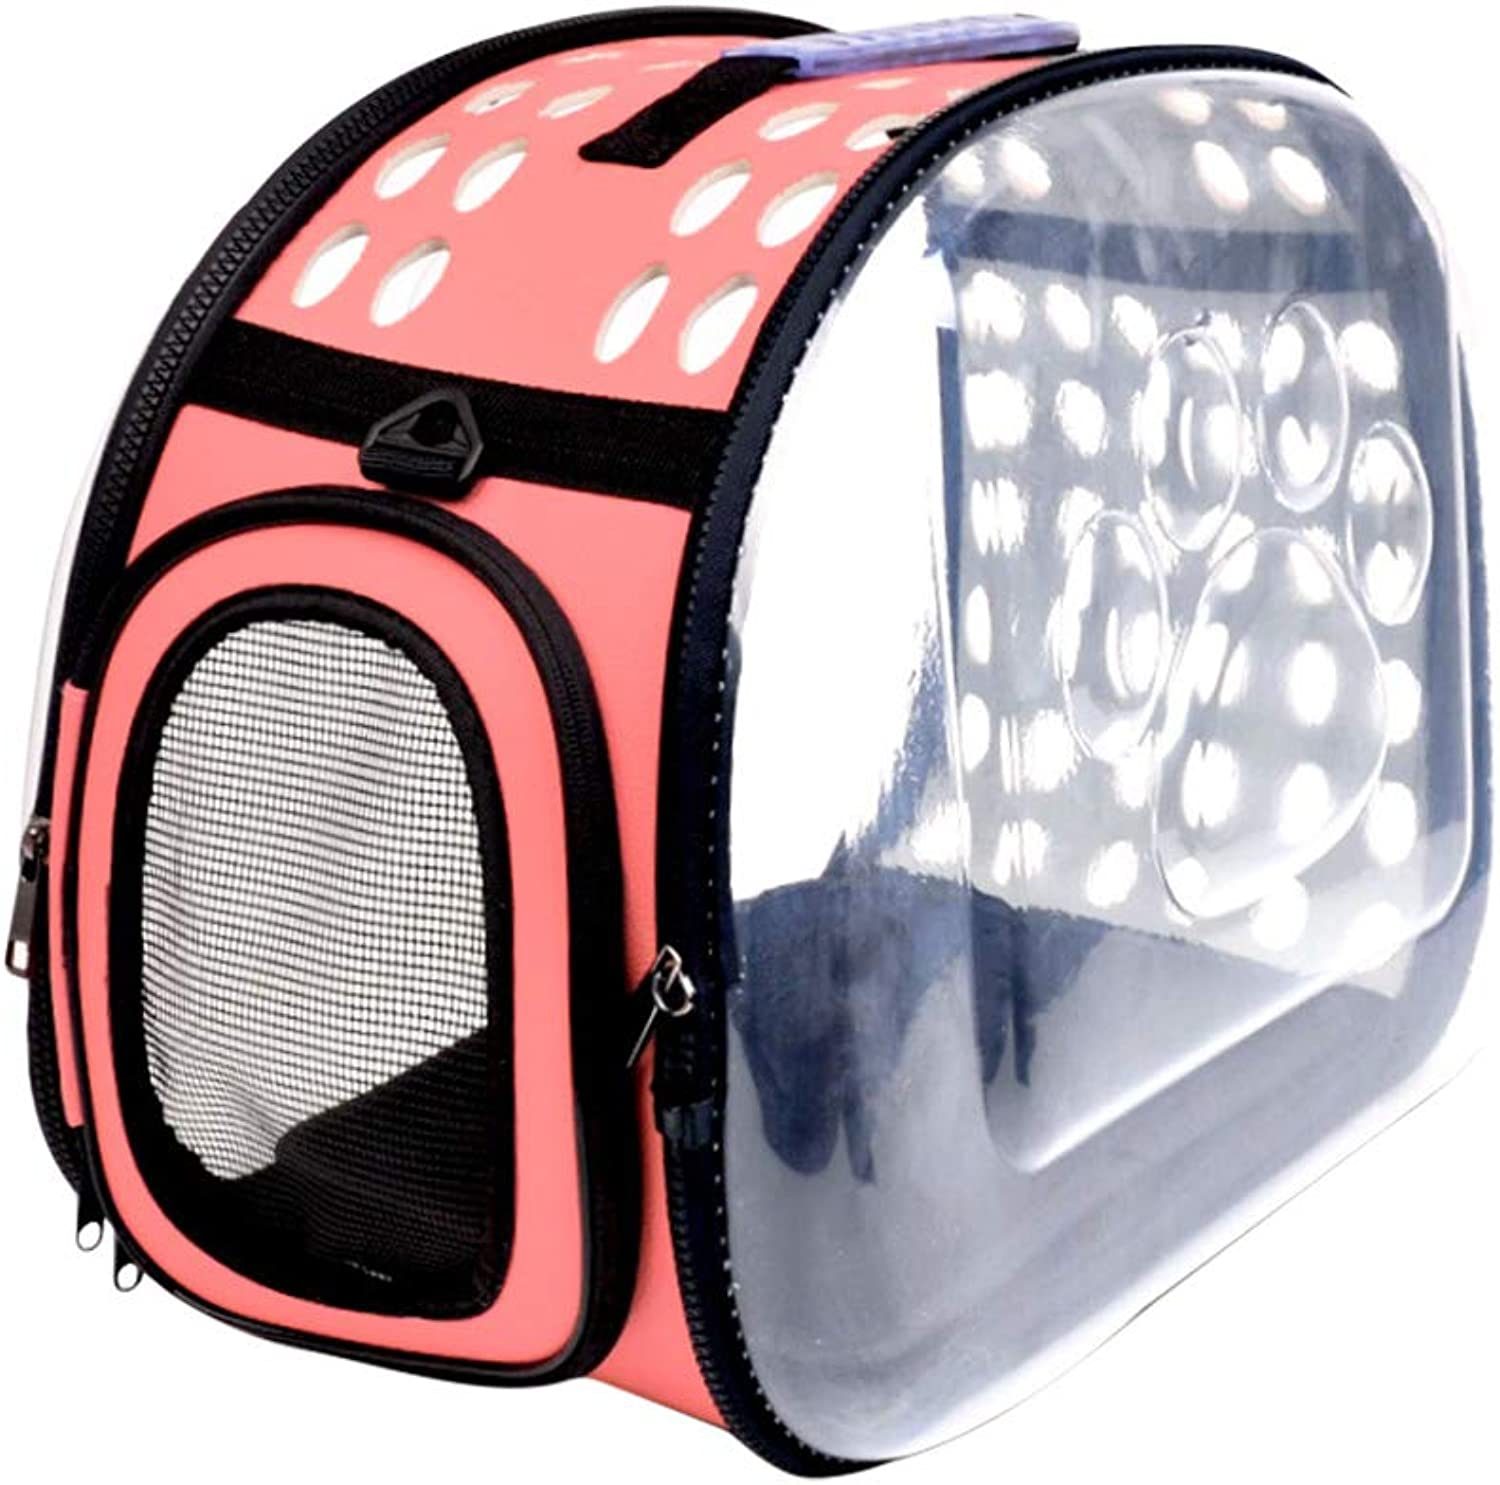 POPETPOP Transparent Pet Carrier Travel Bag Collapsible Cat Transport Bag for Puppy Rabbit Small Animals Pink Size L